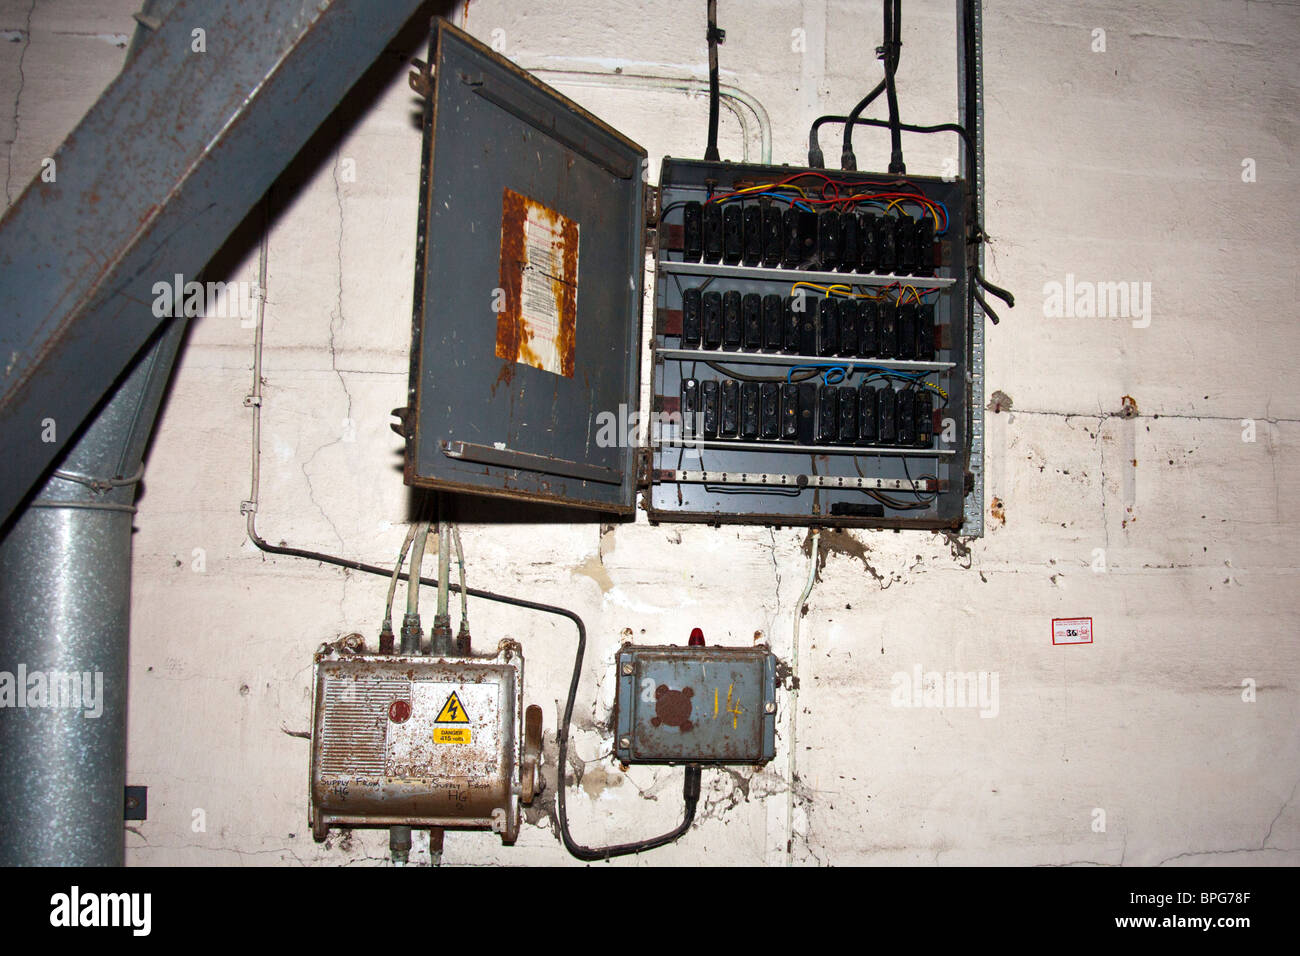 Electrical control panel in a derelict factory, wires and switches everywhere - Stock Image